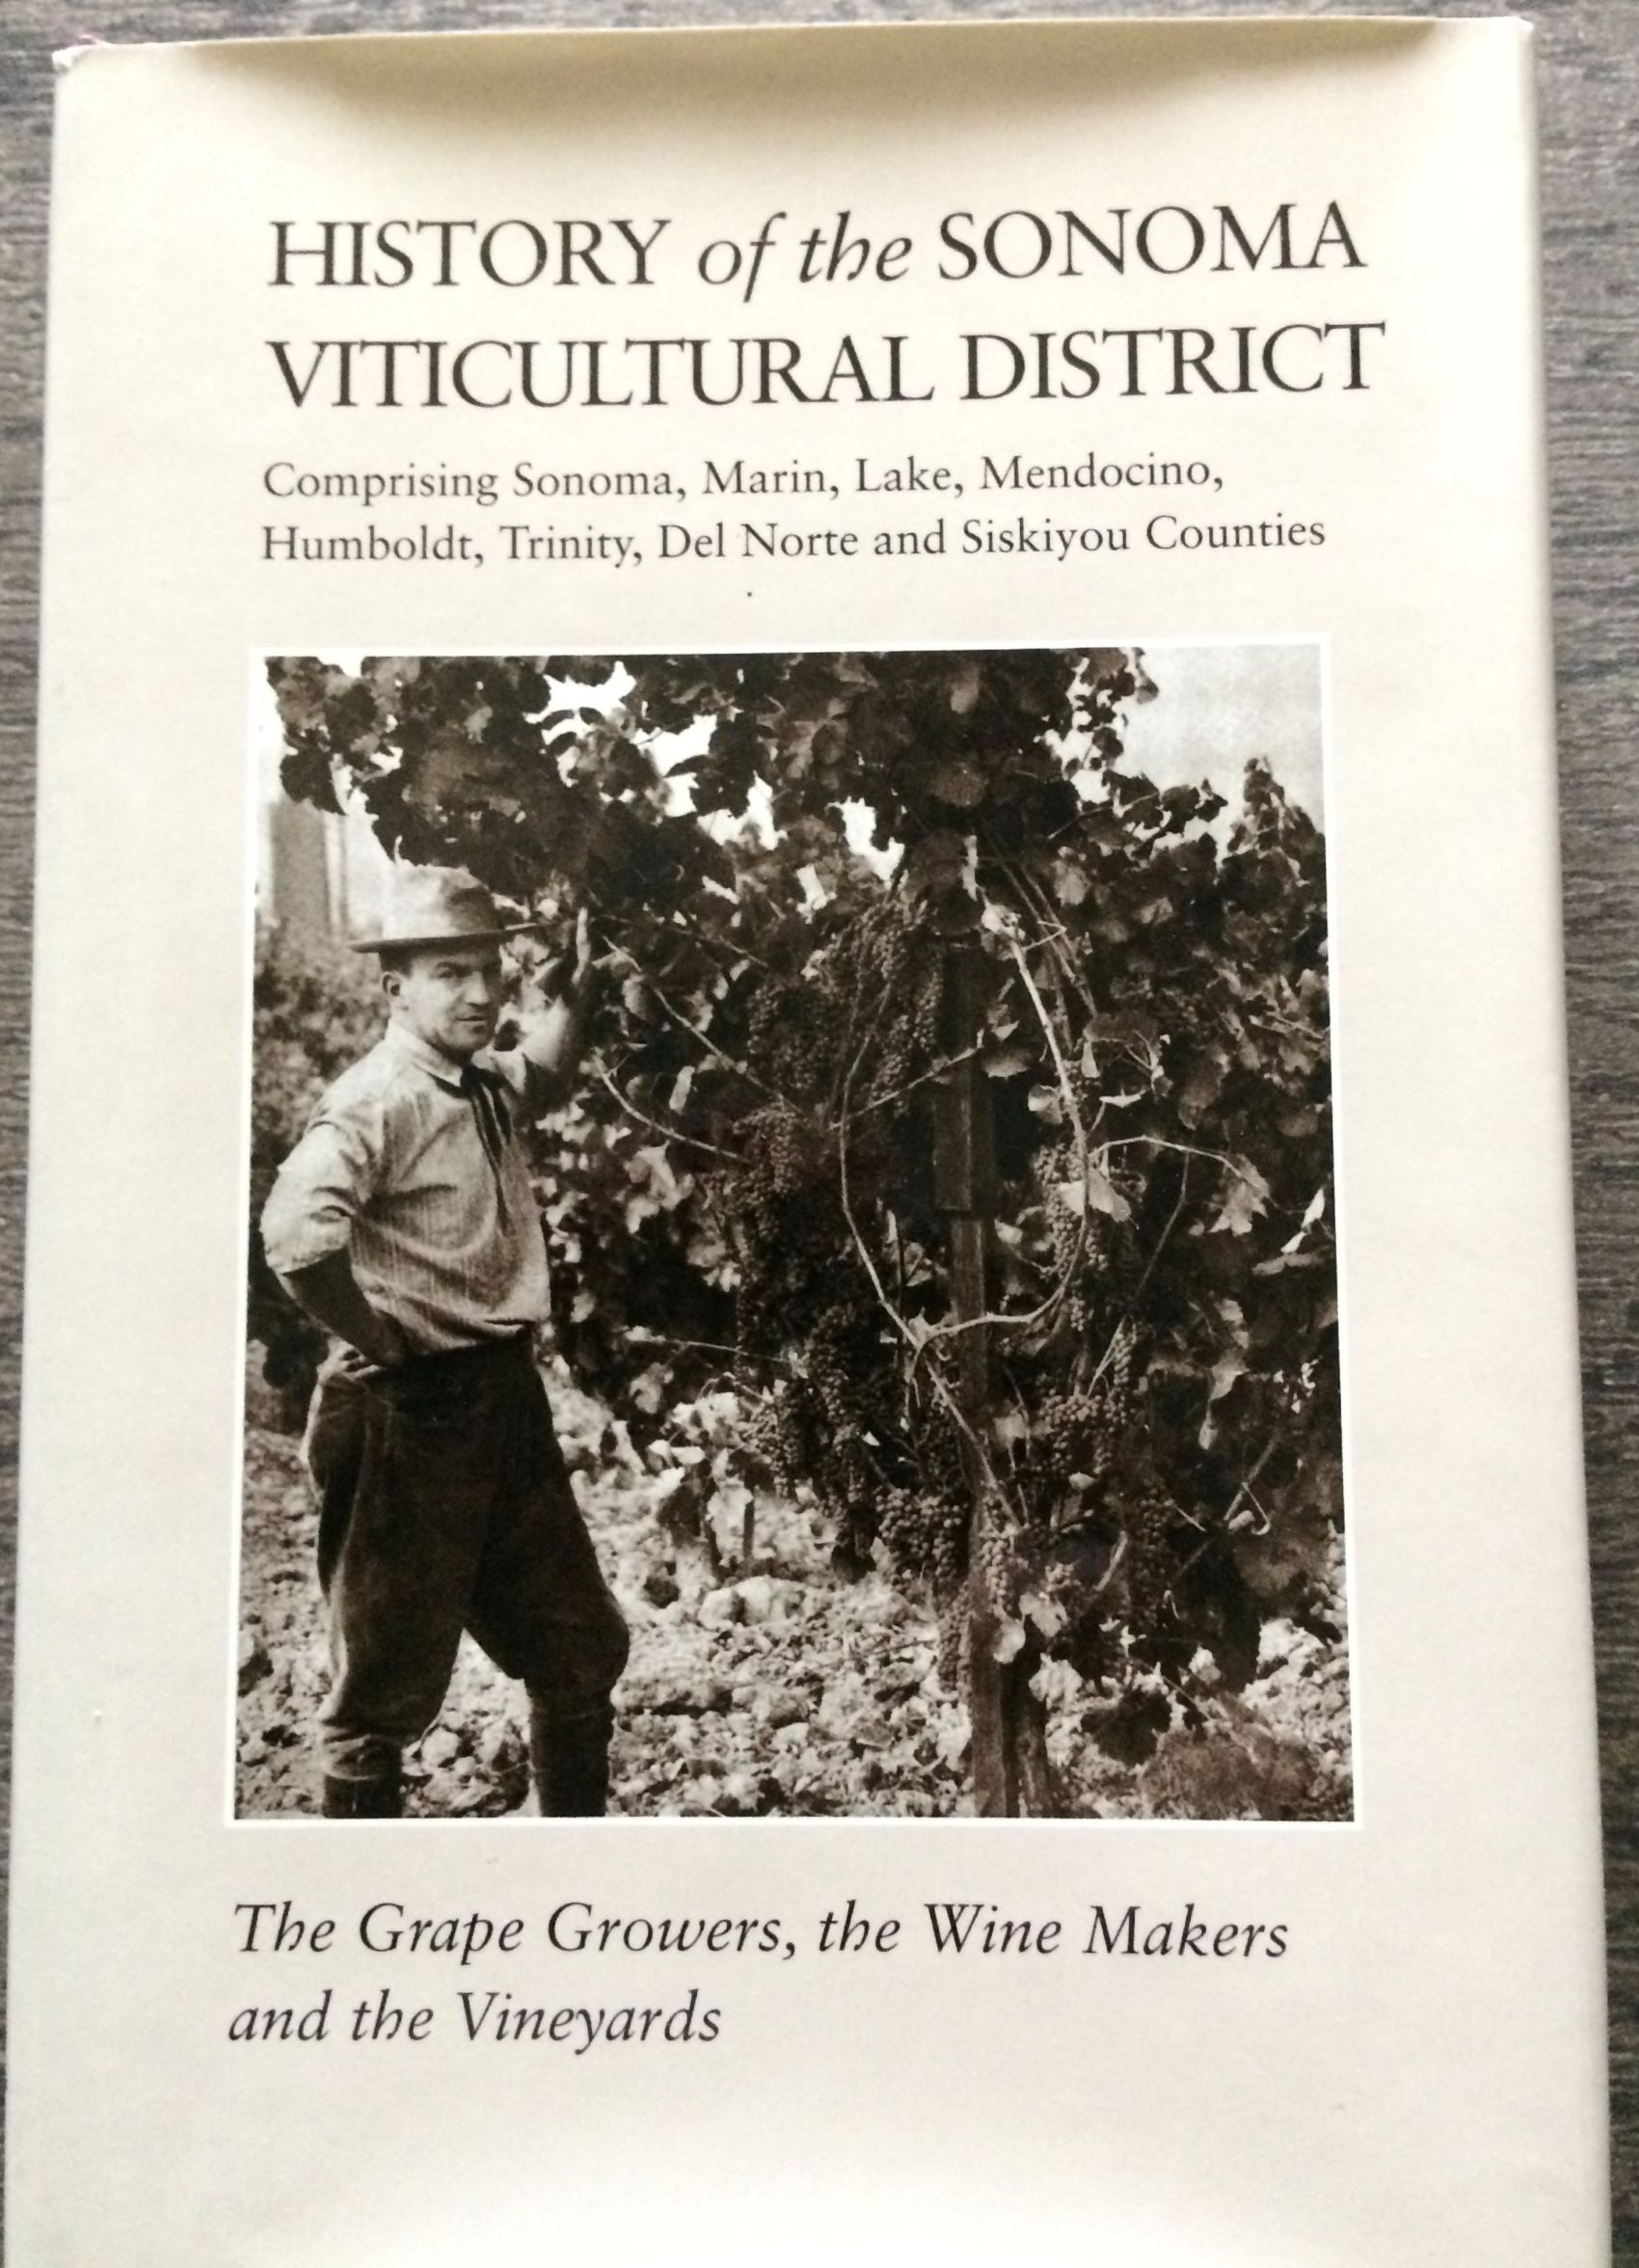 Image for History of the Sonoma Viticultural District. The Grape Growers, the Wine Makers and the Vineyards. (Inscribed).